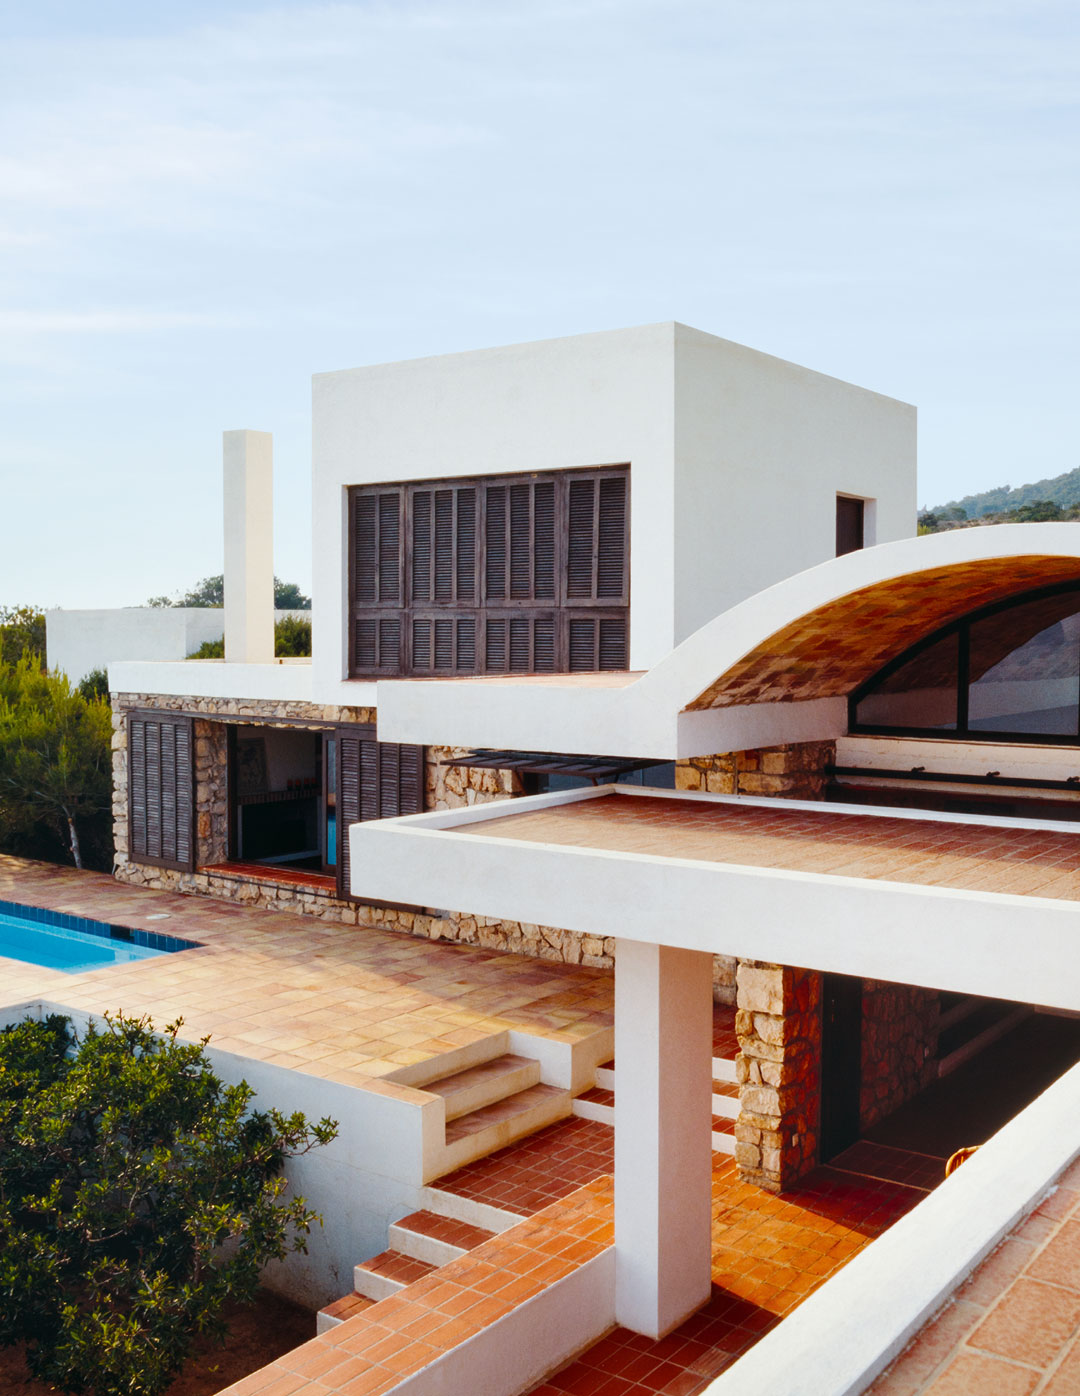 Ses Voltes, Raimon Torres and Pierre Colin, Cala Carbó, Sant Josep, Ibiza, Balearic Islands (ES), 1964. From Mid-Century Modern Houses